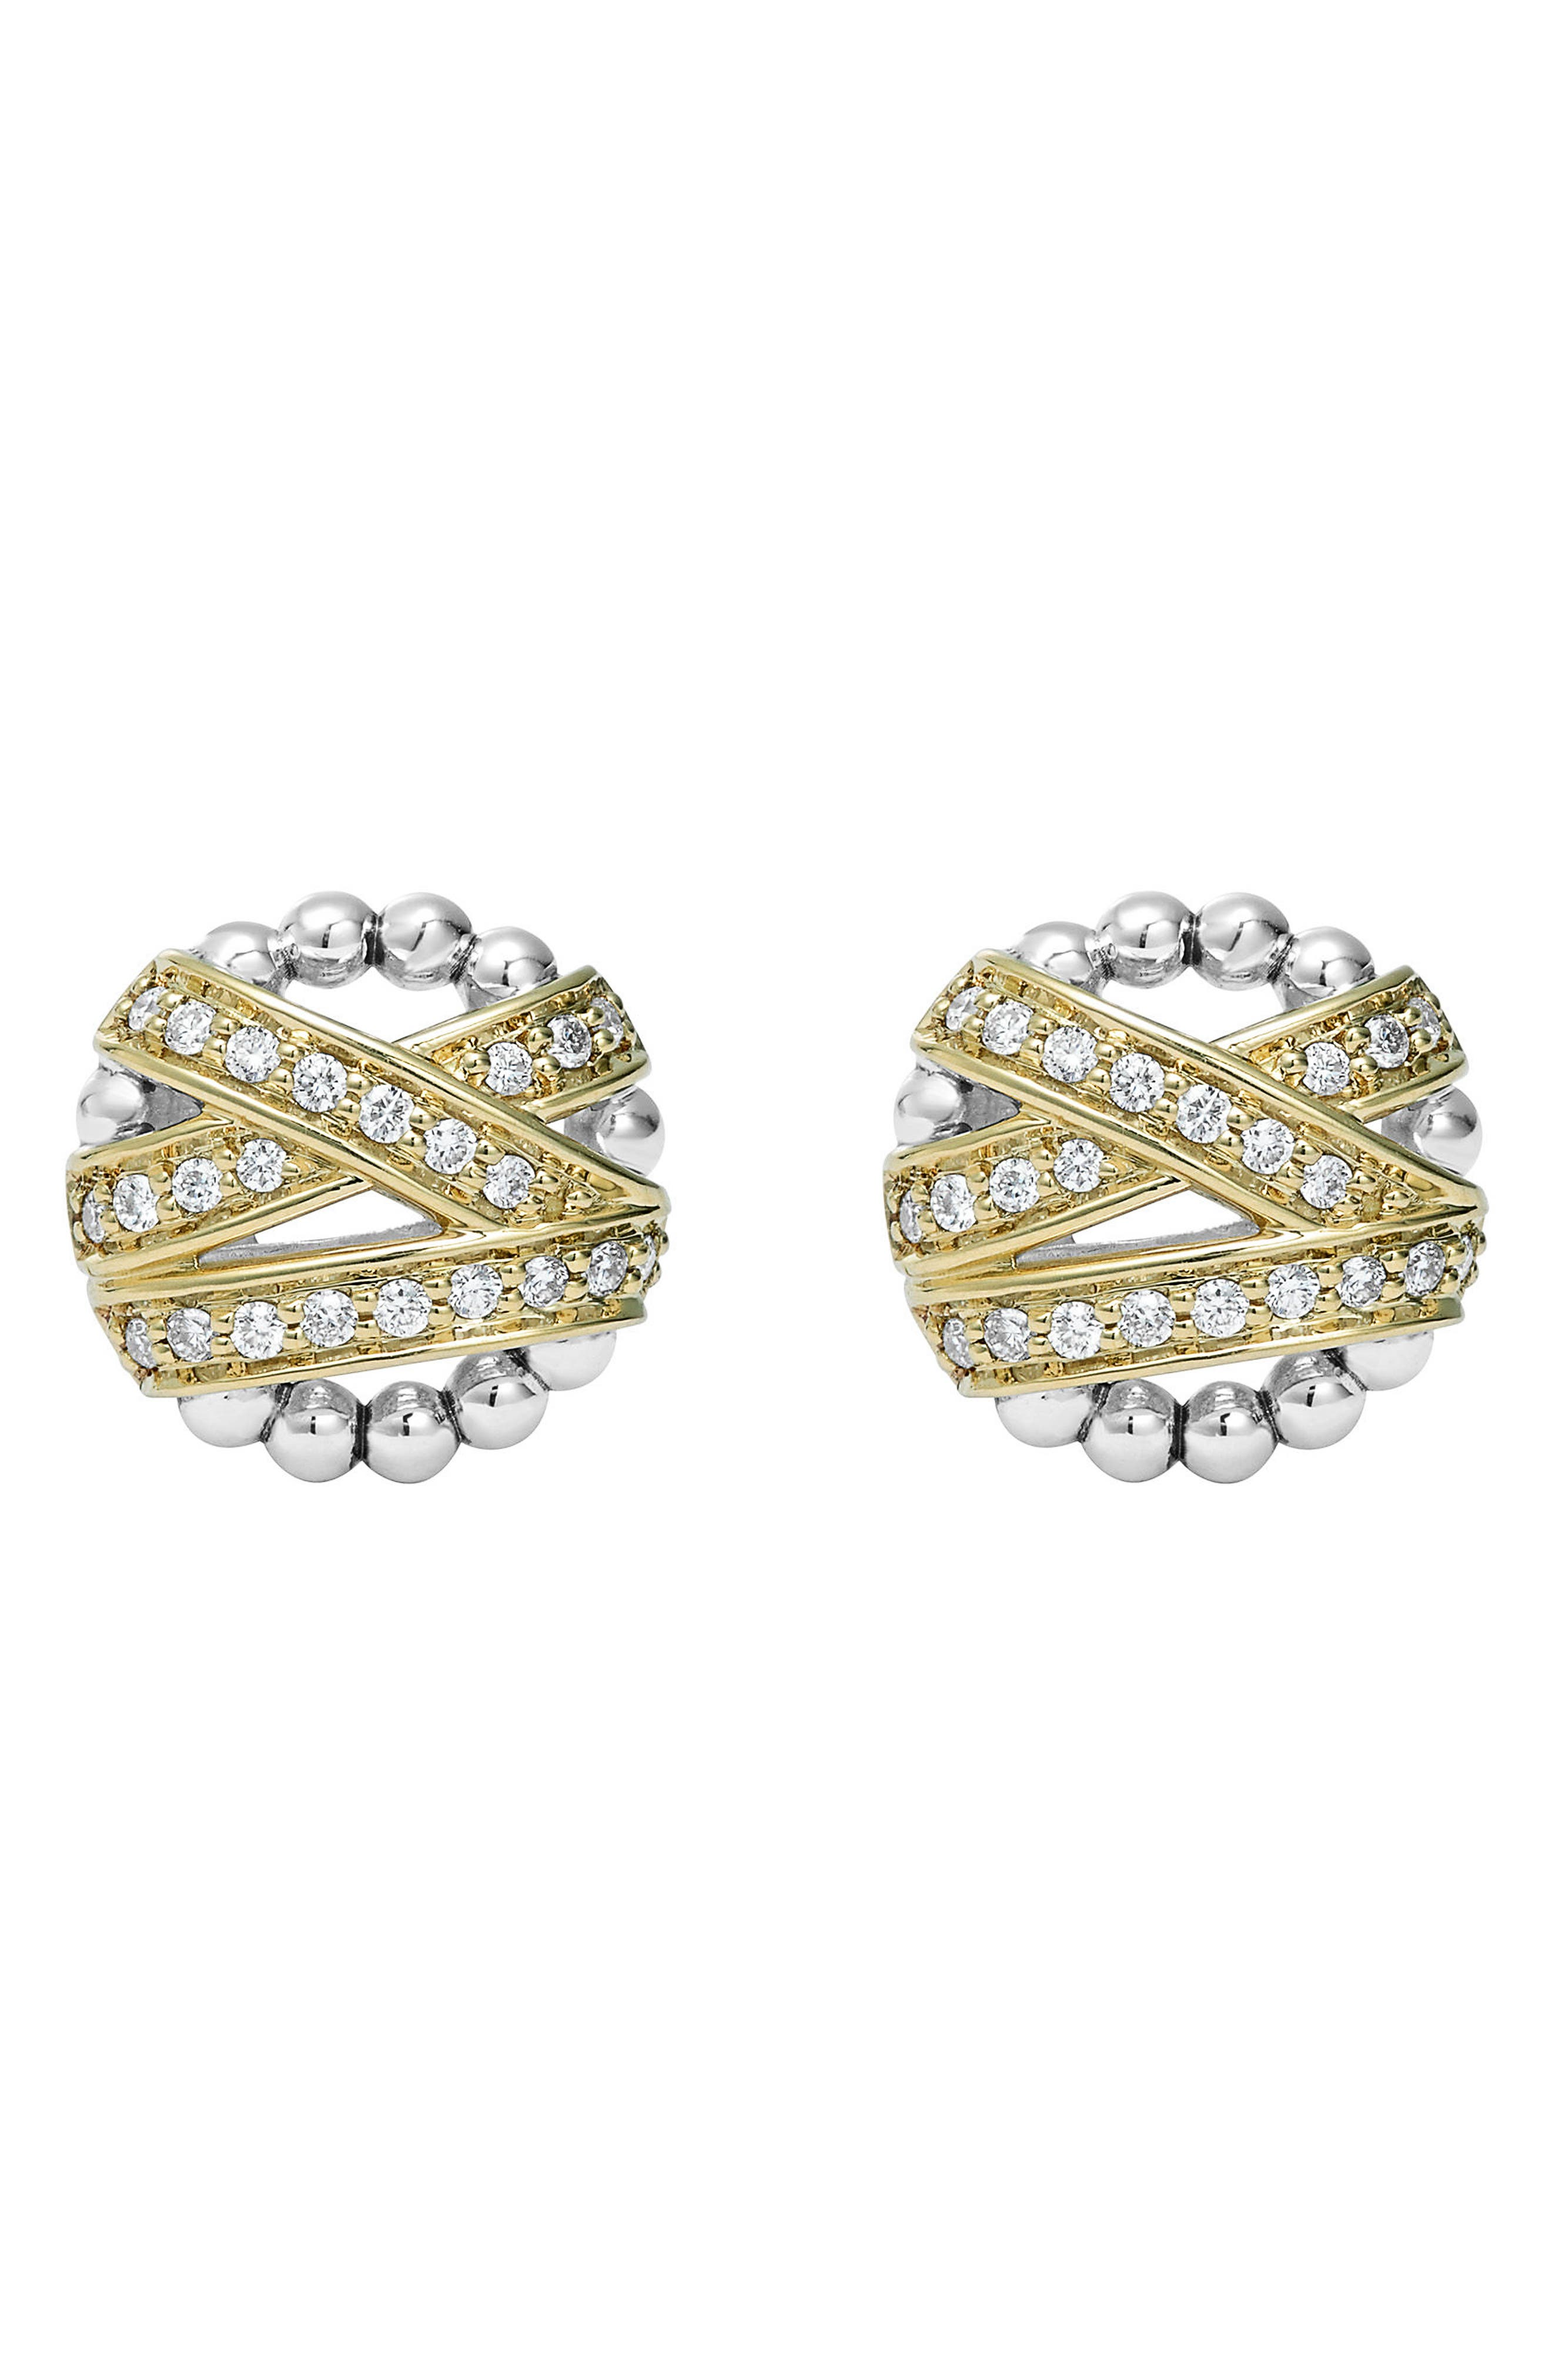 'Diamonds & Caviar' Diamond Stud Earrings,                             Alternate thumbnail 2, color,                             710